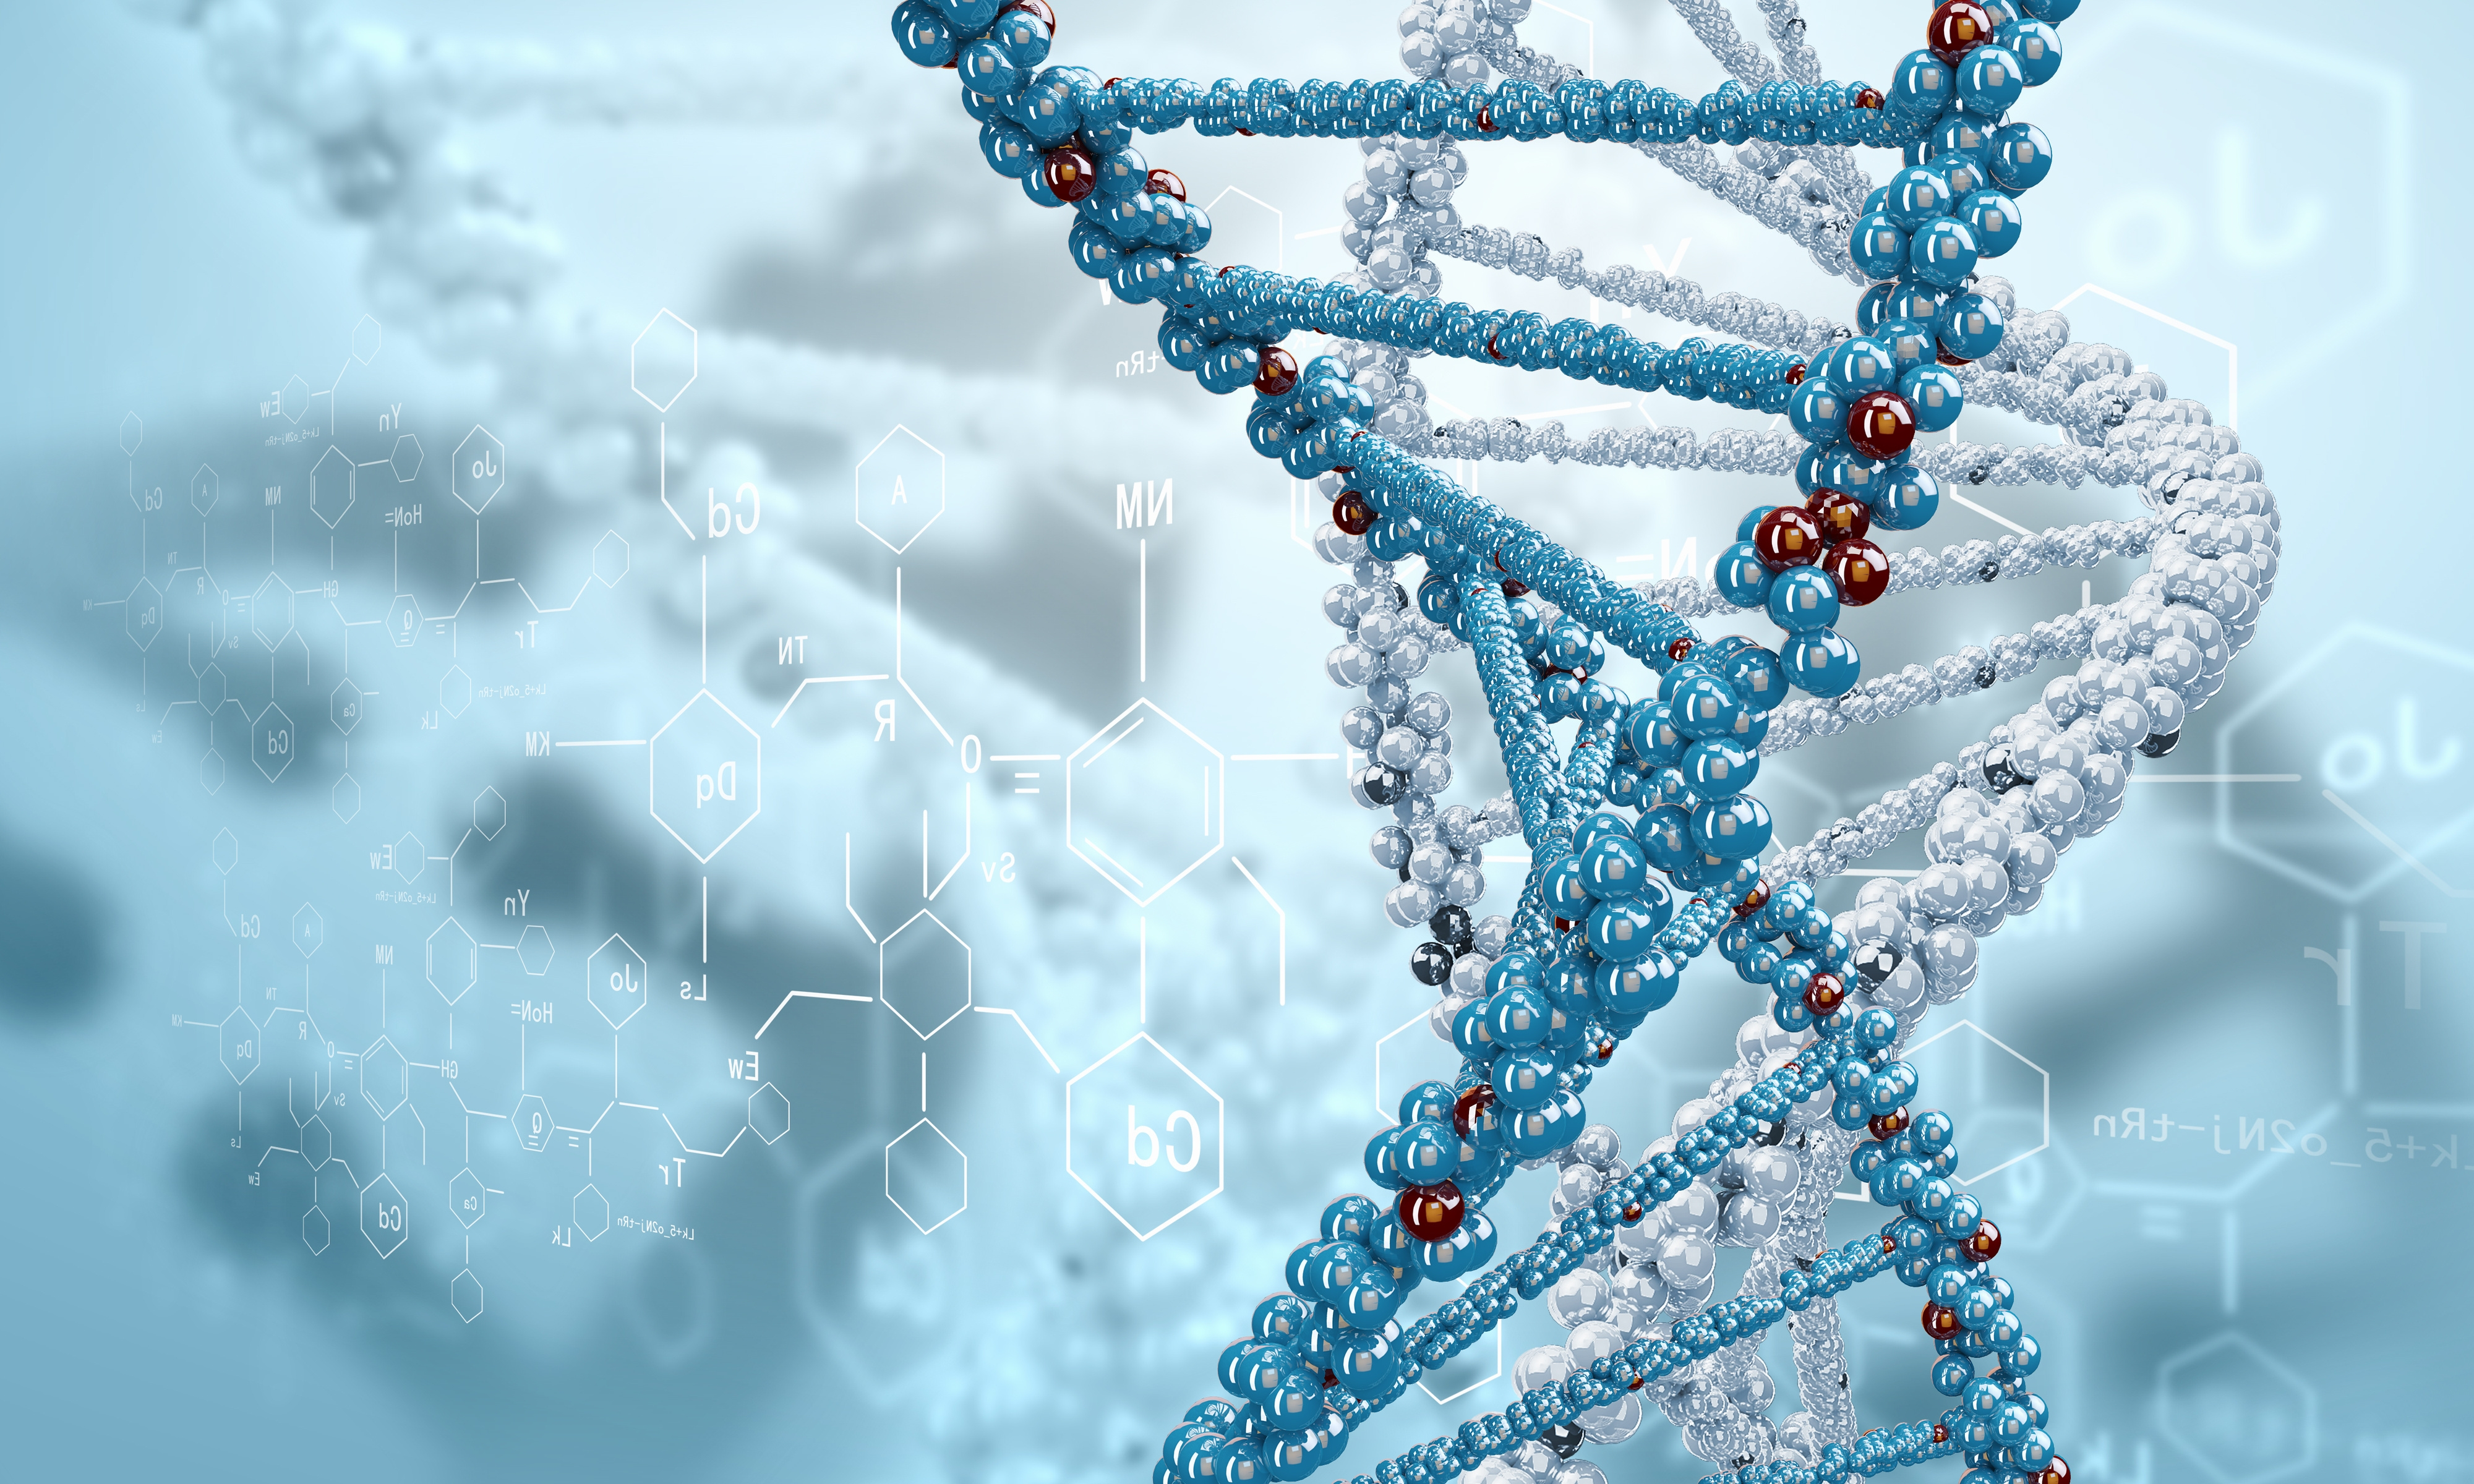 3D DNA Wallpapers HD Desktop and Mobile Backgrounds 4000x2400